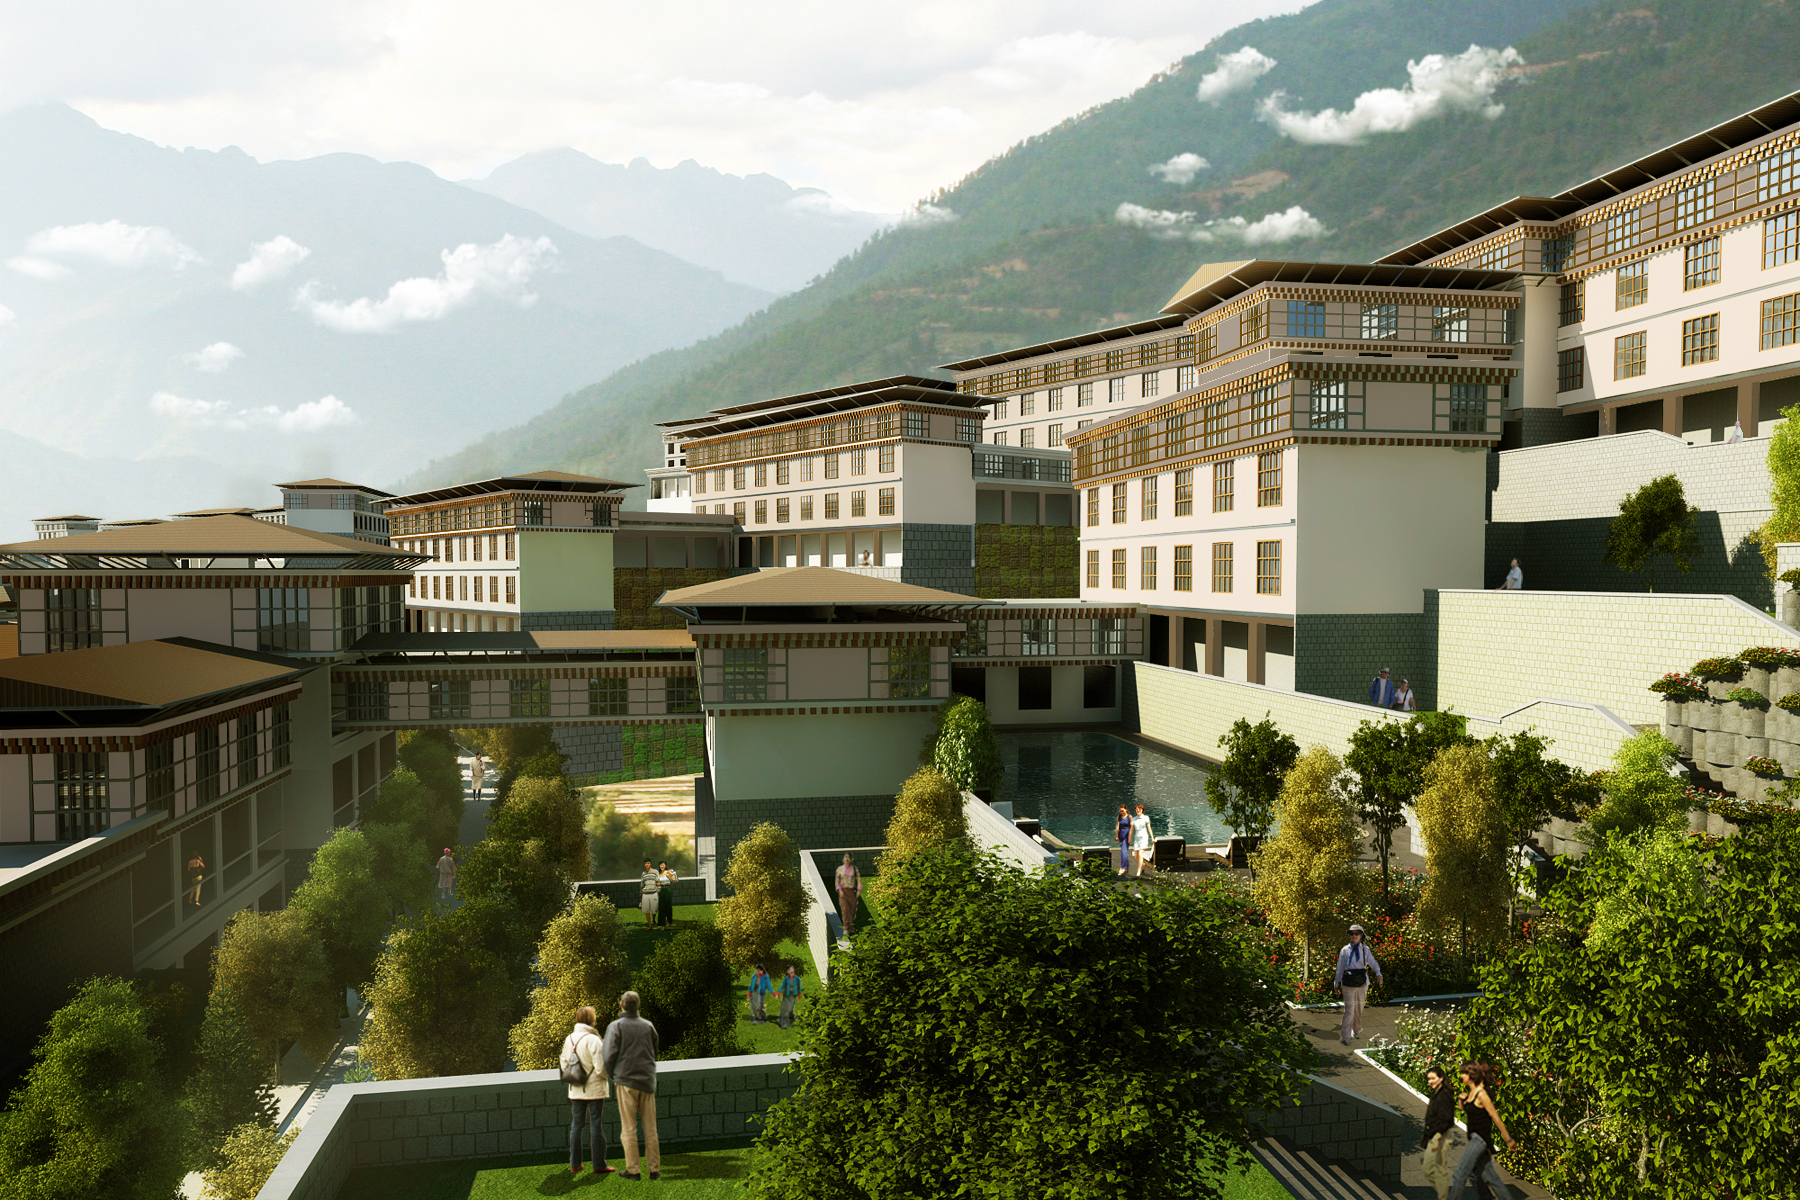 Bhutan Education City Rendering 1 - Plan A